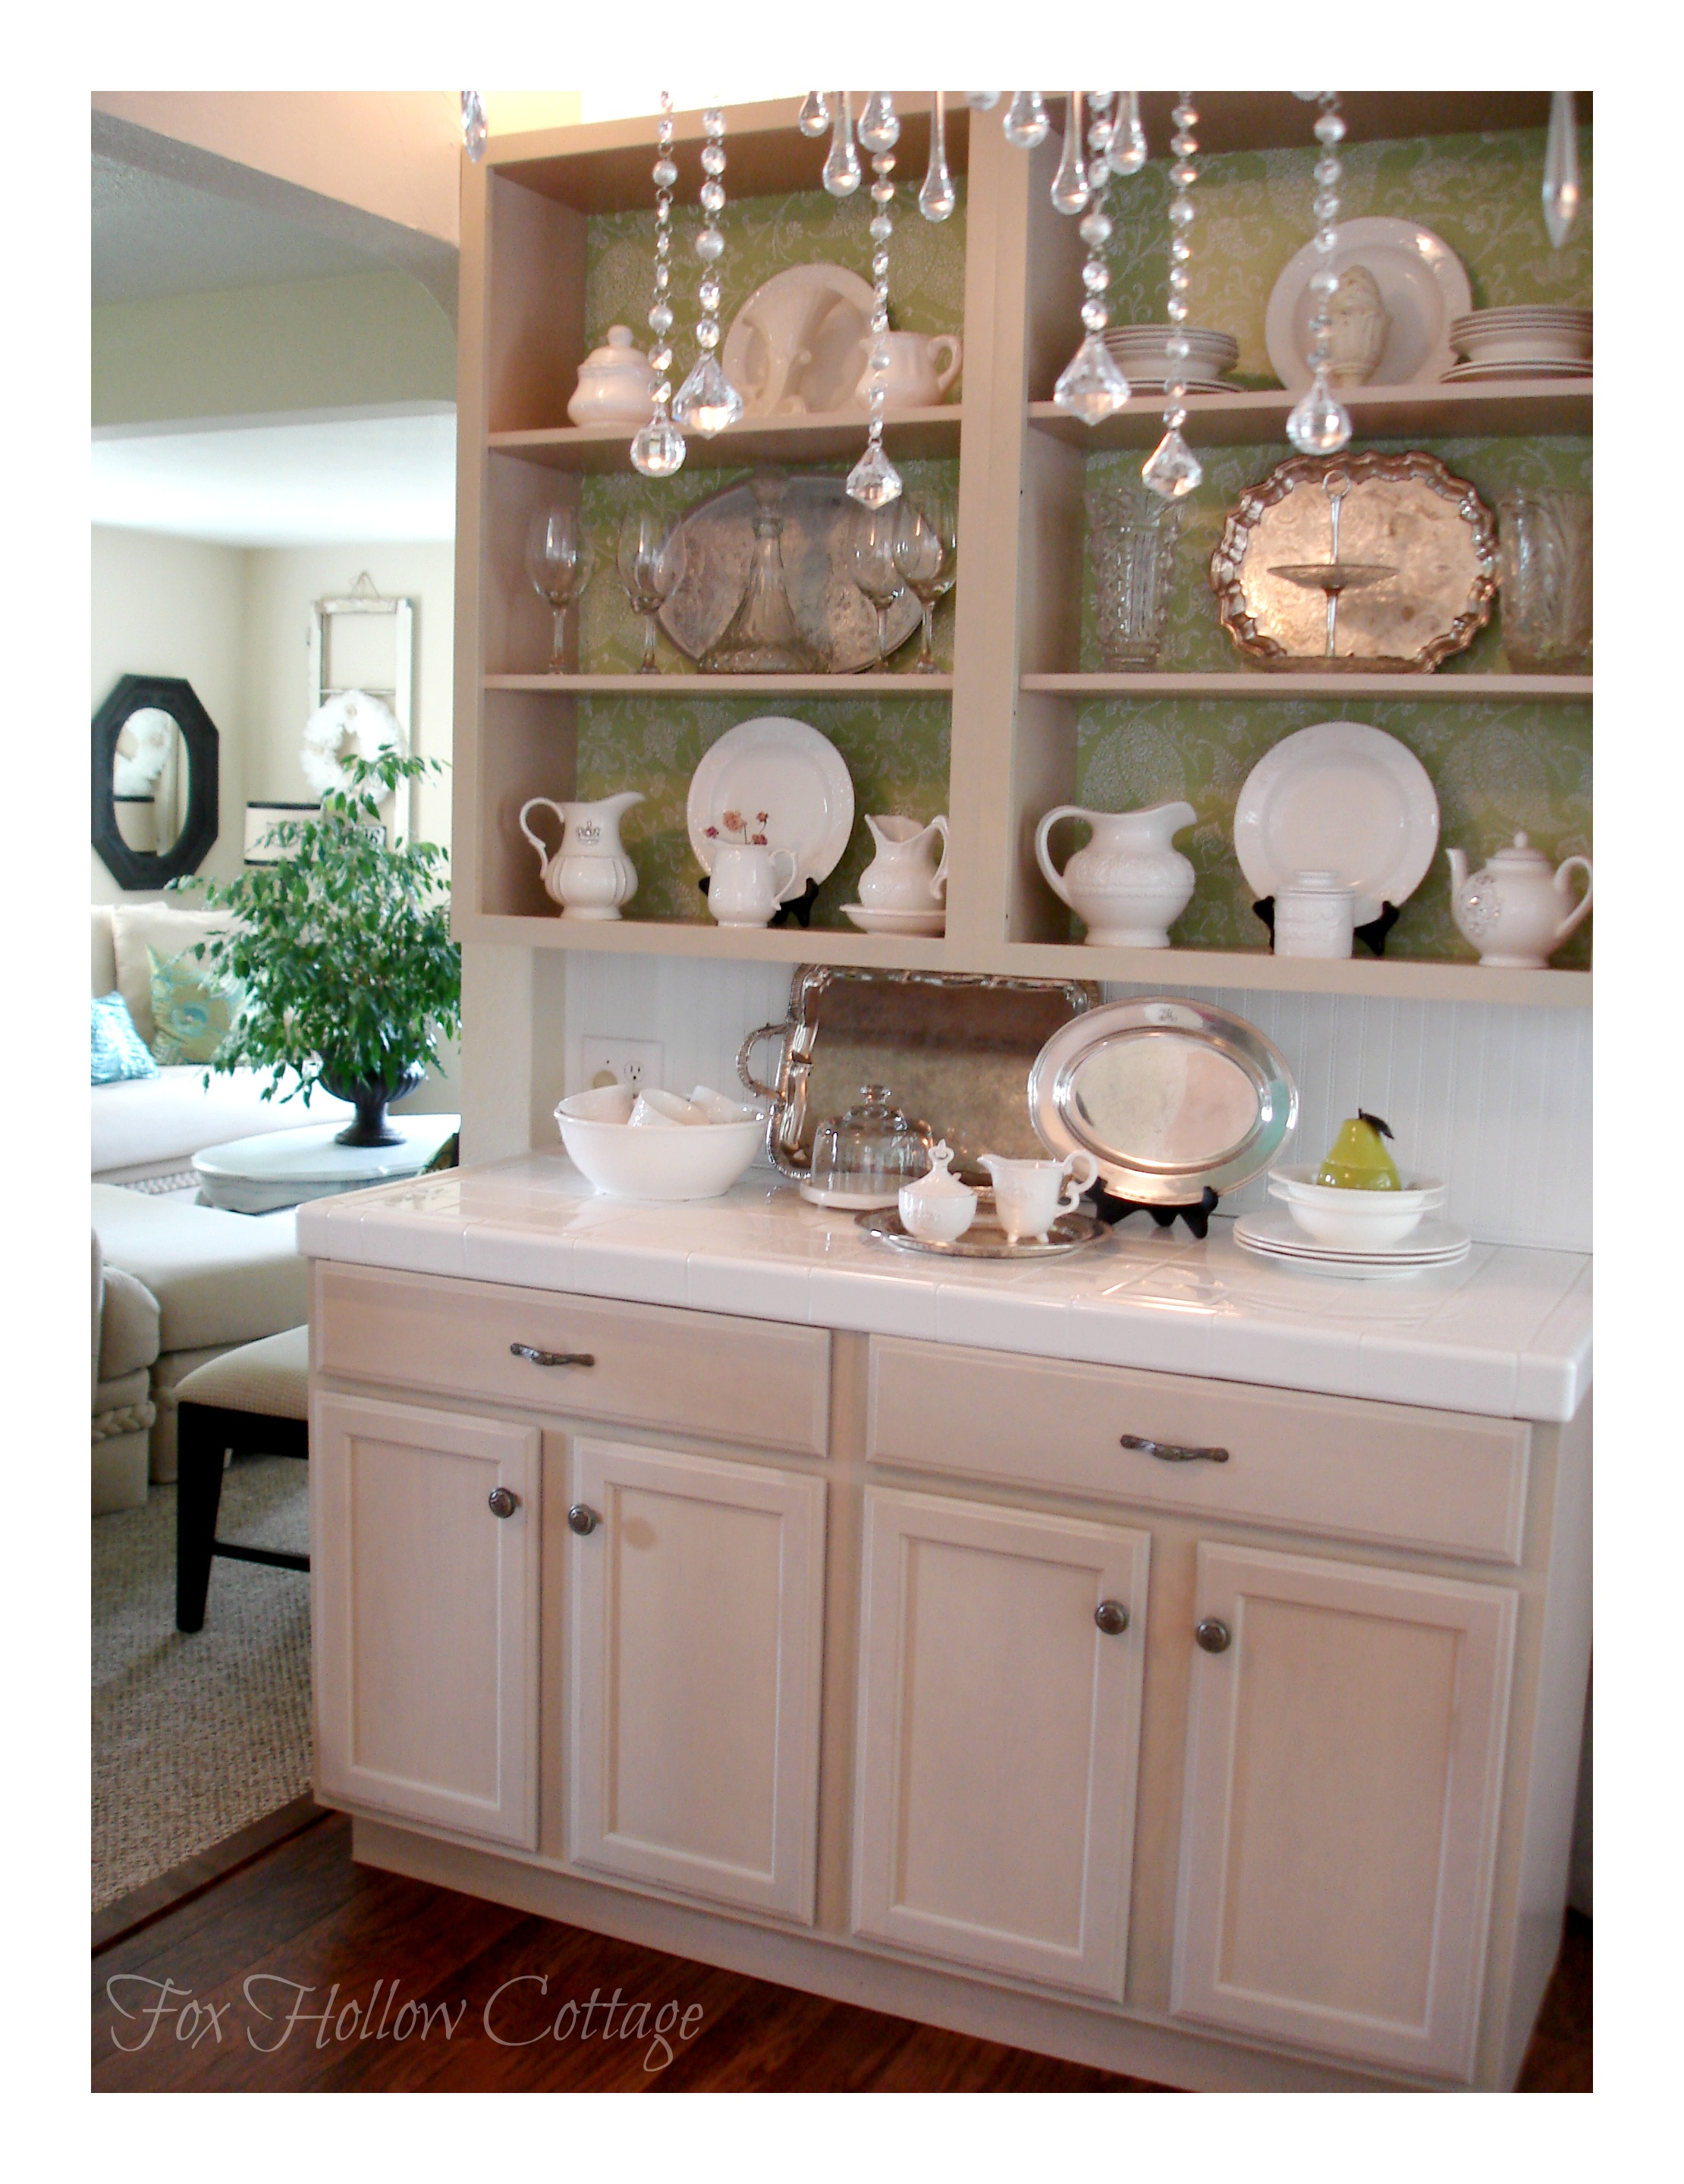 A Kitchen Cabinet Makeover To Diy For And A Giveaway Fox Hollow Cottage